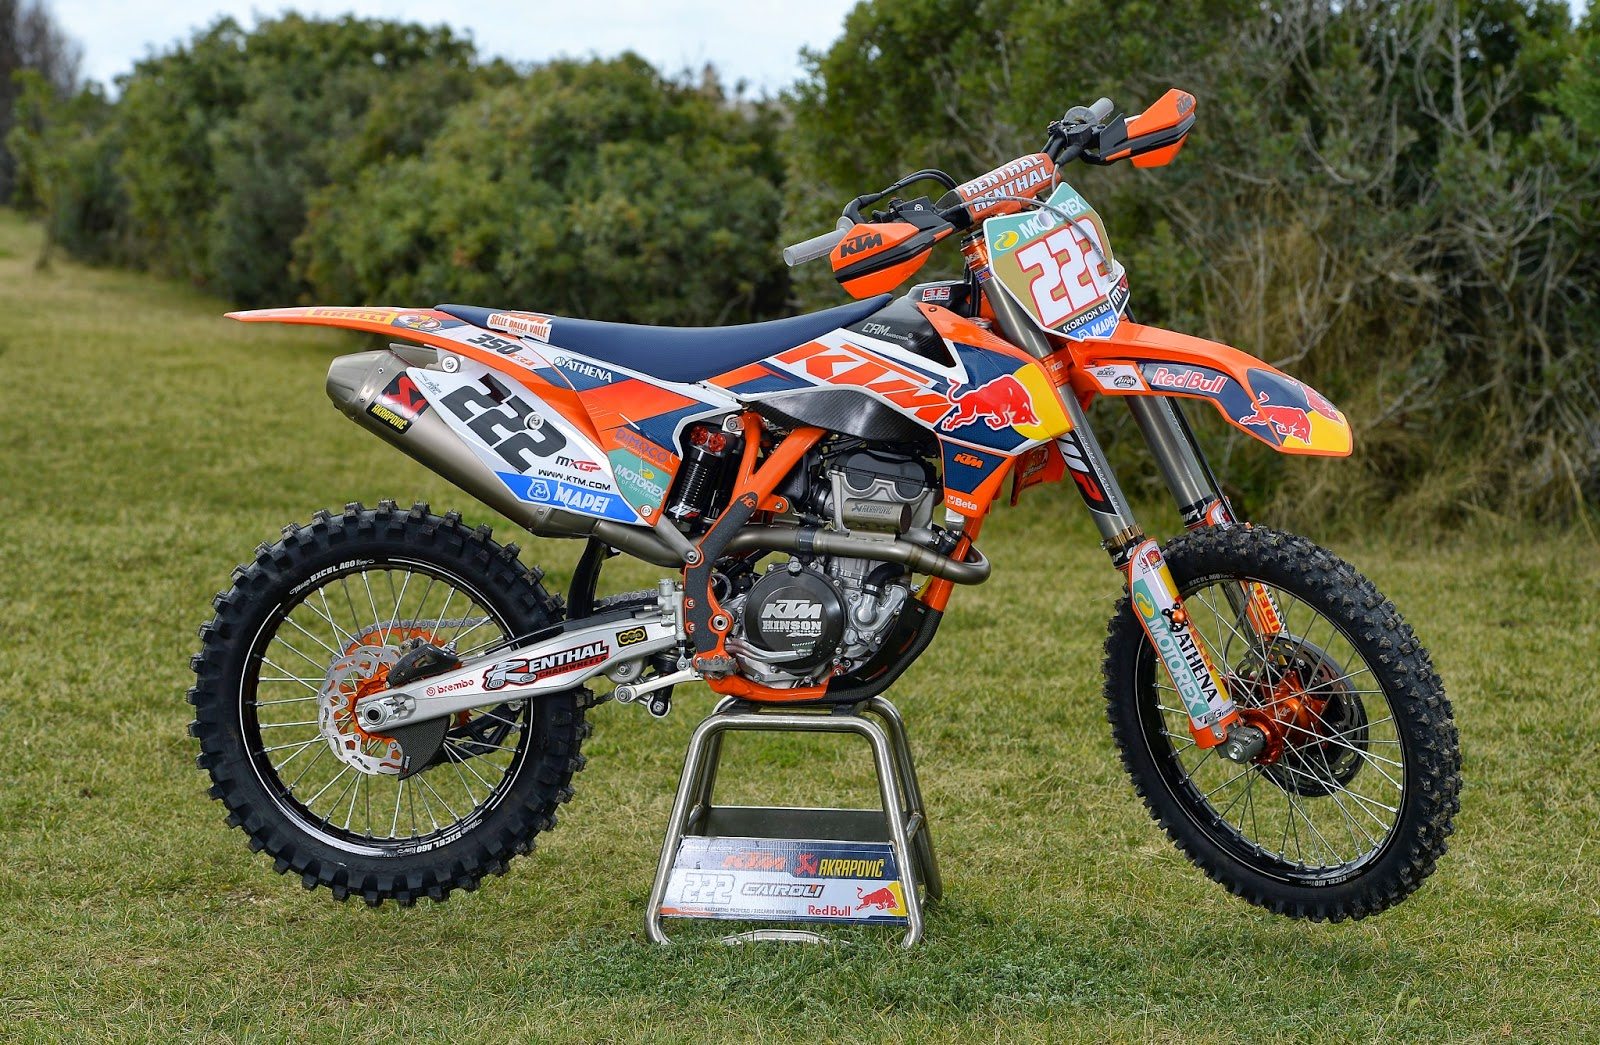 racing caf ktm sx 350f tony cairoli team red bull ktm factory racing 2014. Black Bedroom Furniture Sets. Home Design Ideas